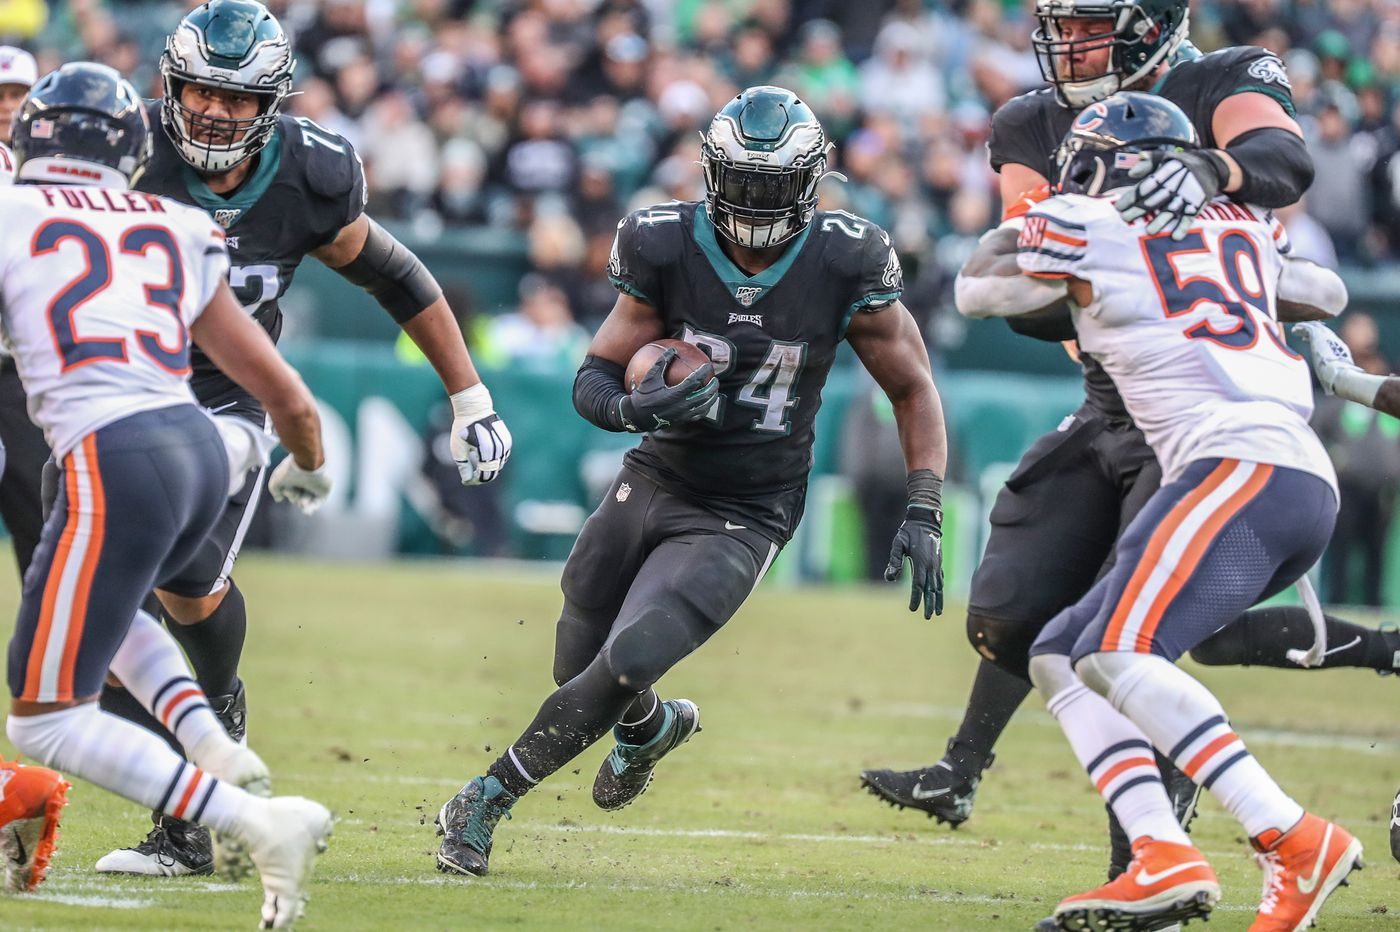 Eagles bringing back Jordan Howard, but he won't be eligible to play at Cleveland because of COVID-19 testing